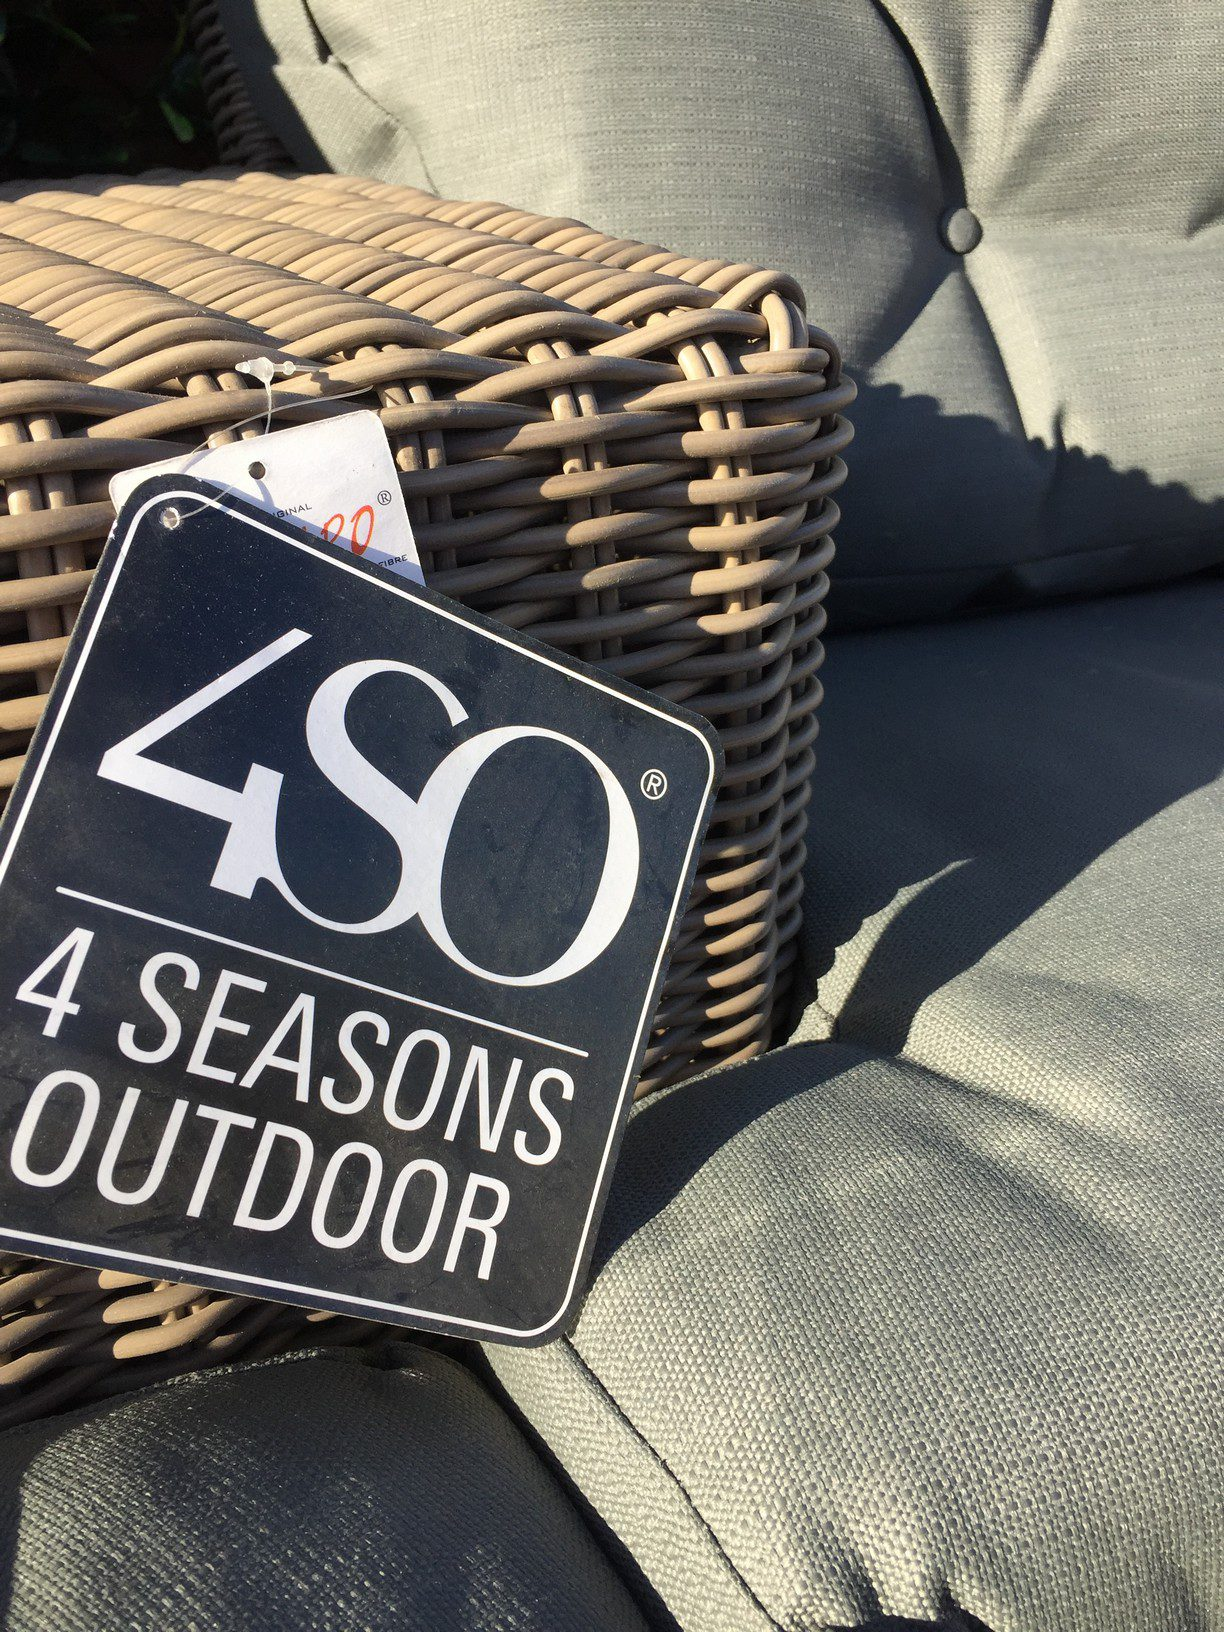 4 Seasons Outdoor Valentine Love Seat With Footrest 10